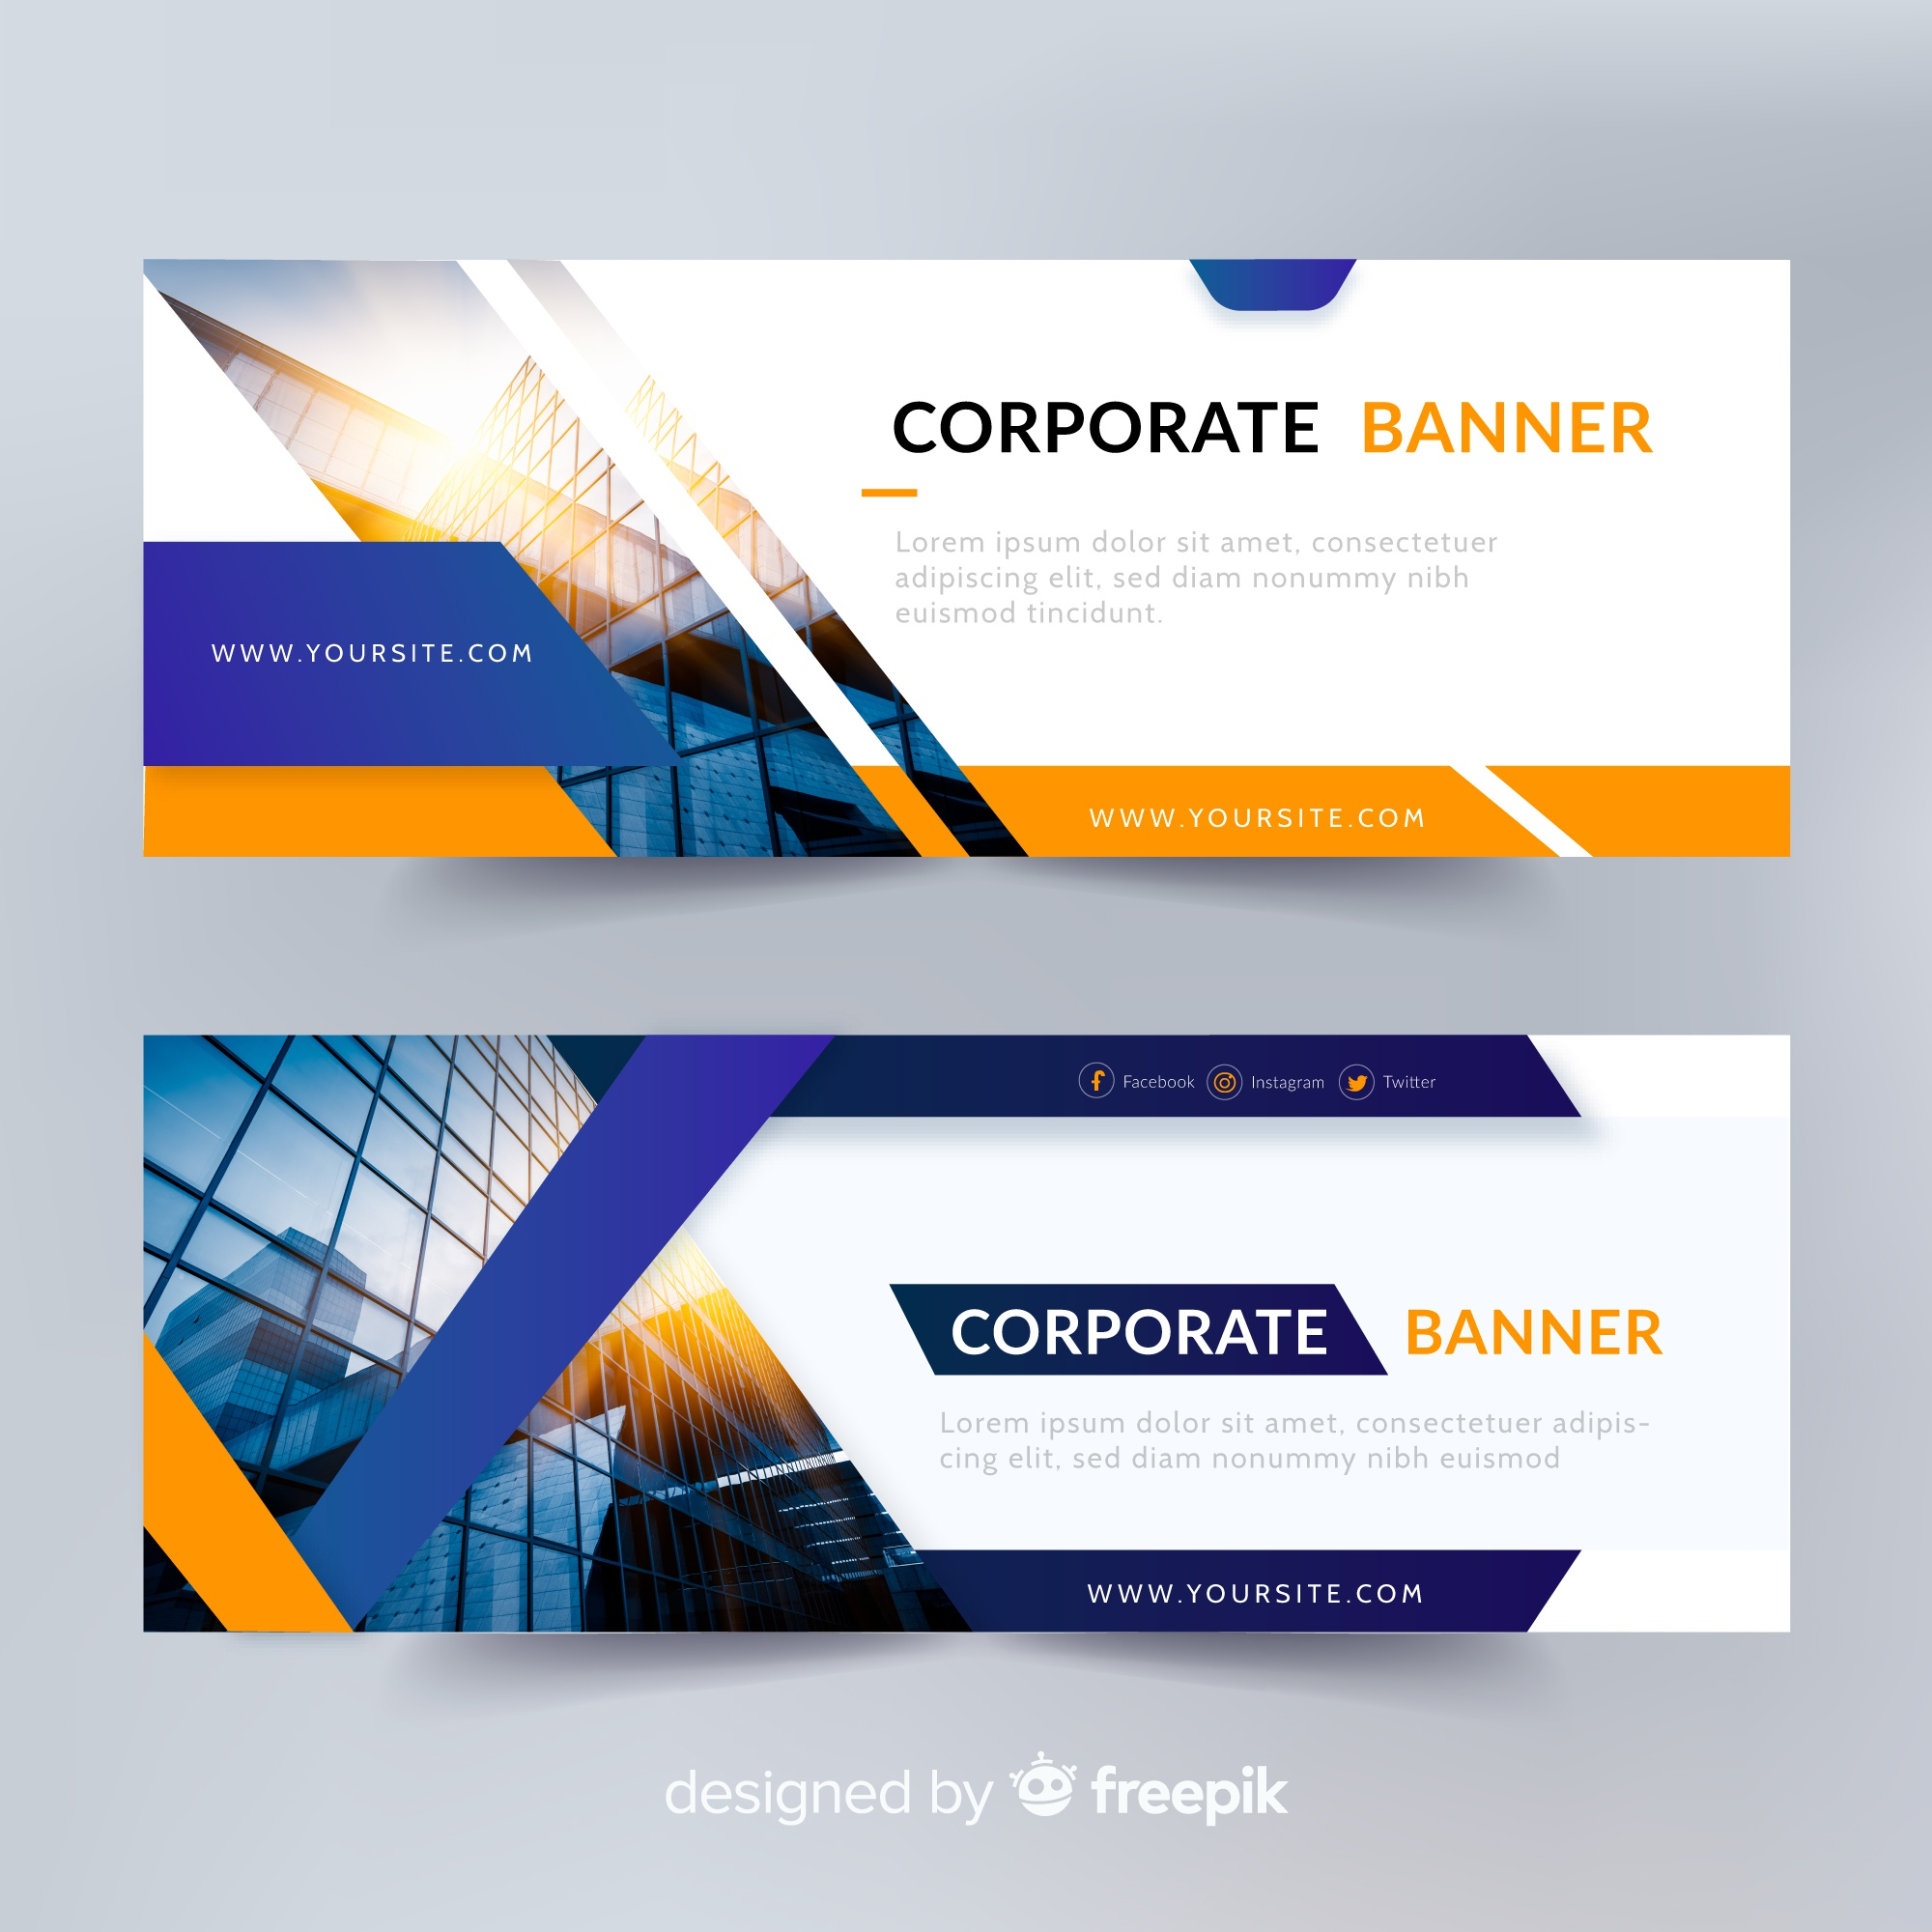 Abstract banner templates with photo